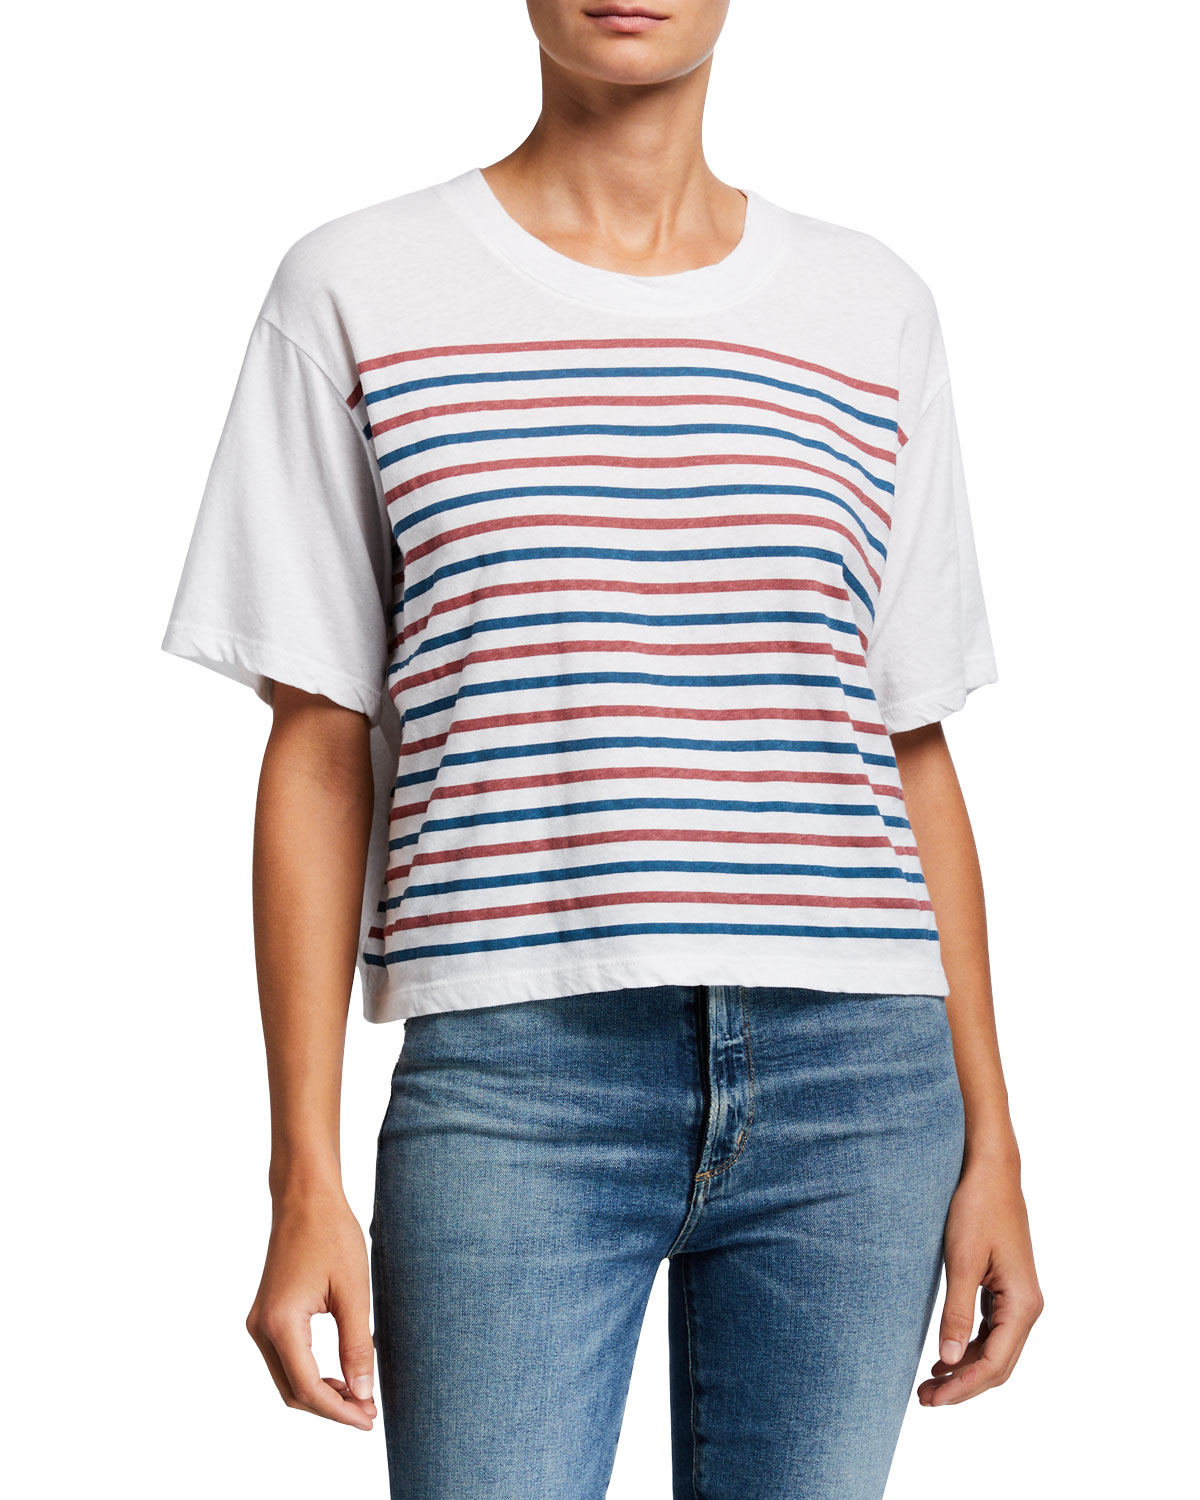 Sundry Tops STRIPED BOXY CROPPED TEE